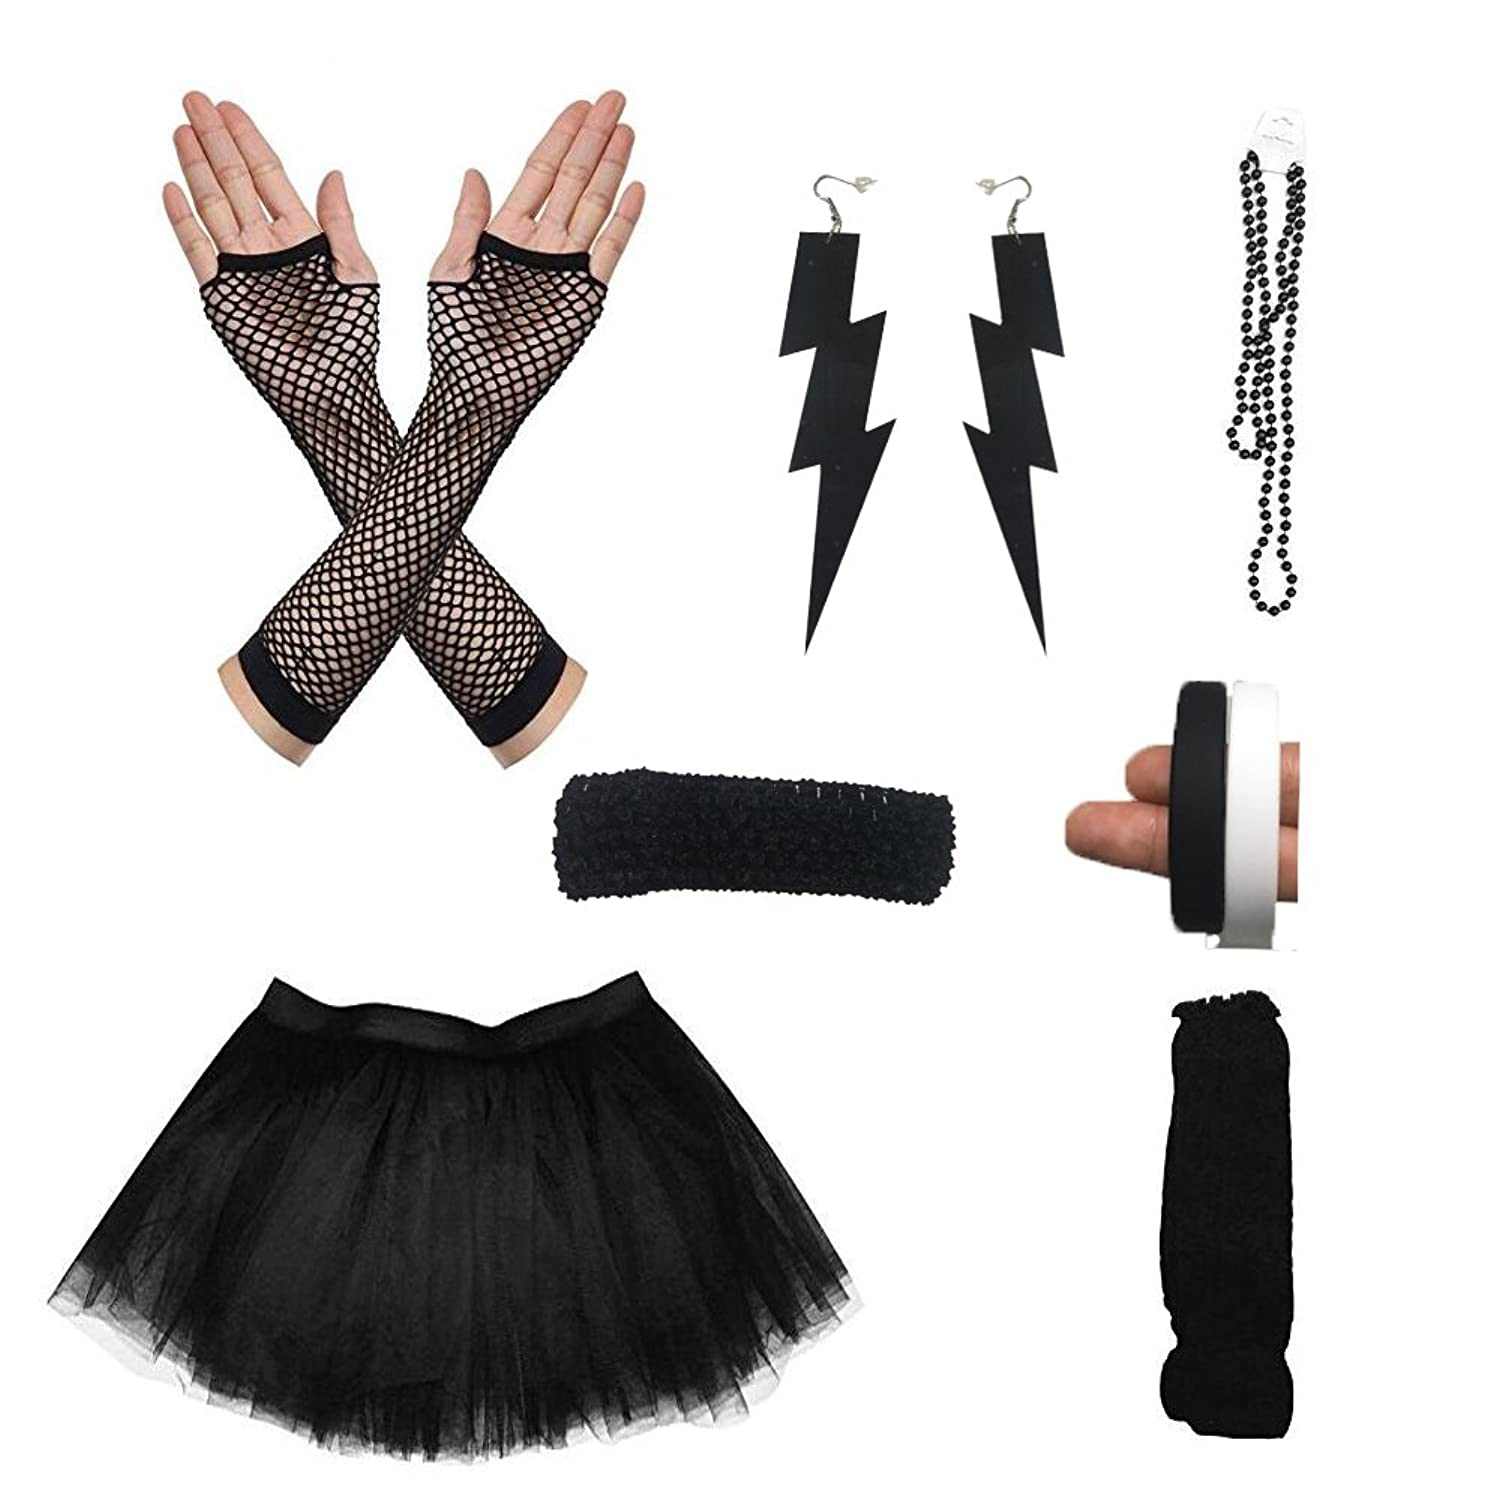 d931589f676d ... Beads, Fishnet Gloves, black and white bracelets, Earings, neon  headband 3-Layered tulle tutu skirt: the color is matching with the  accessoies